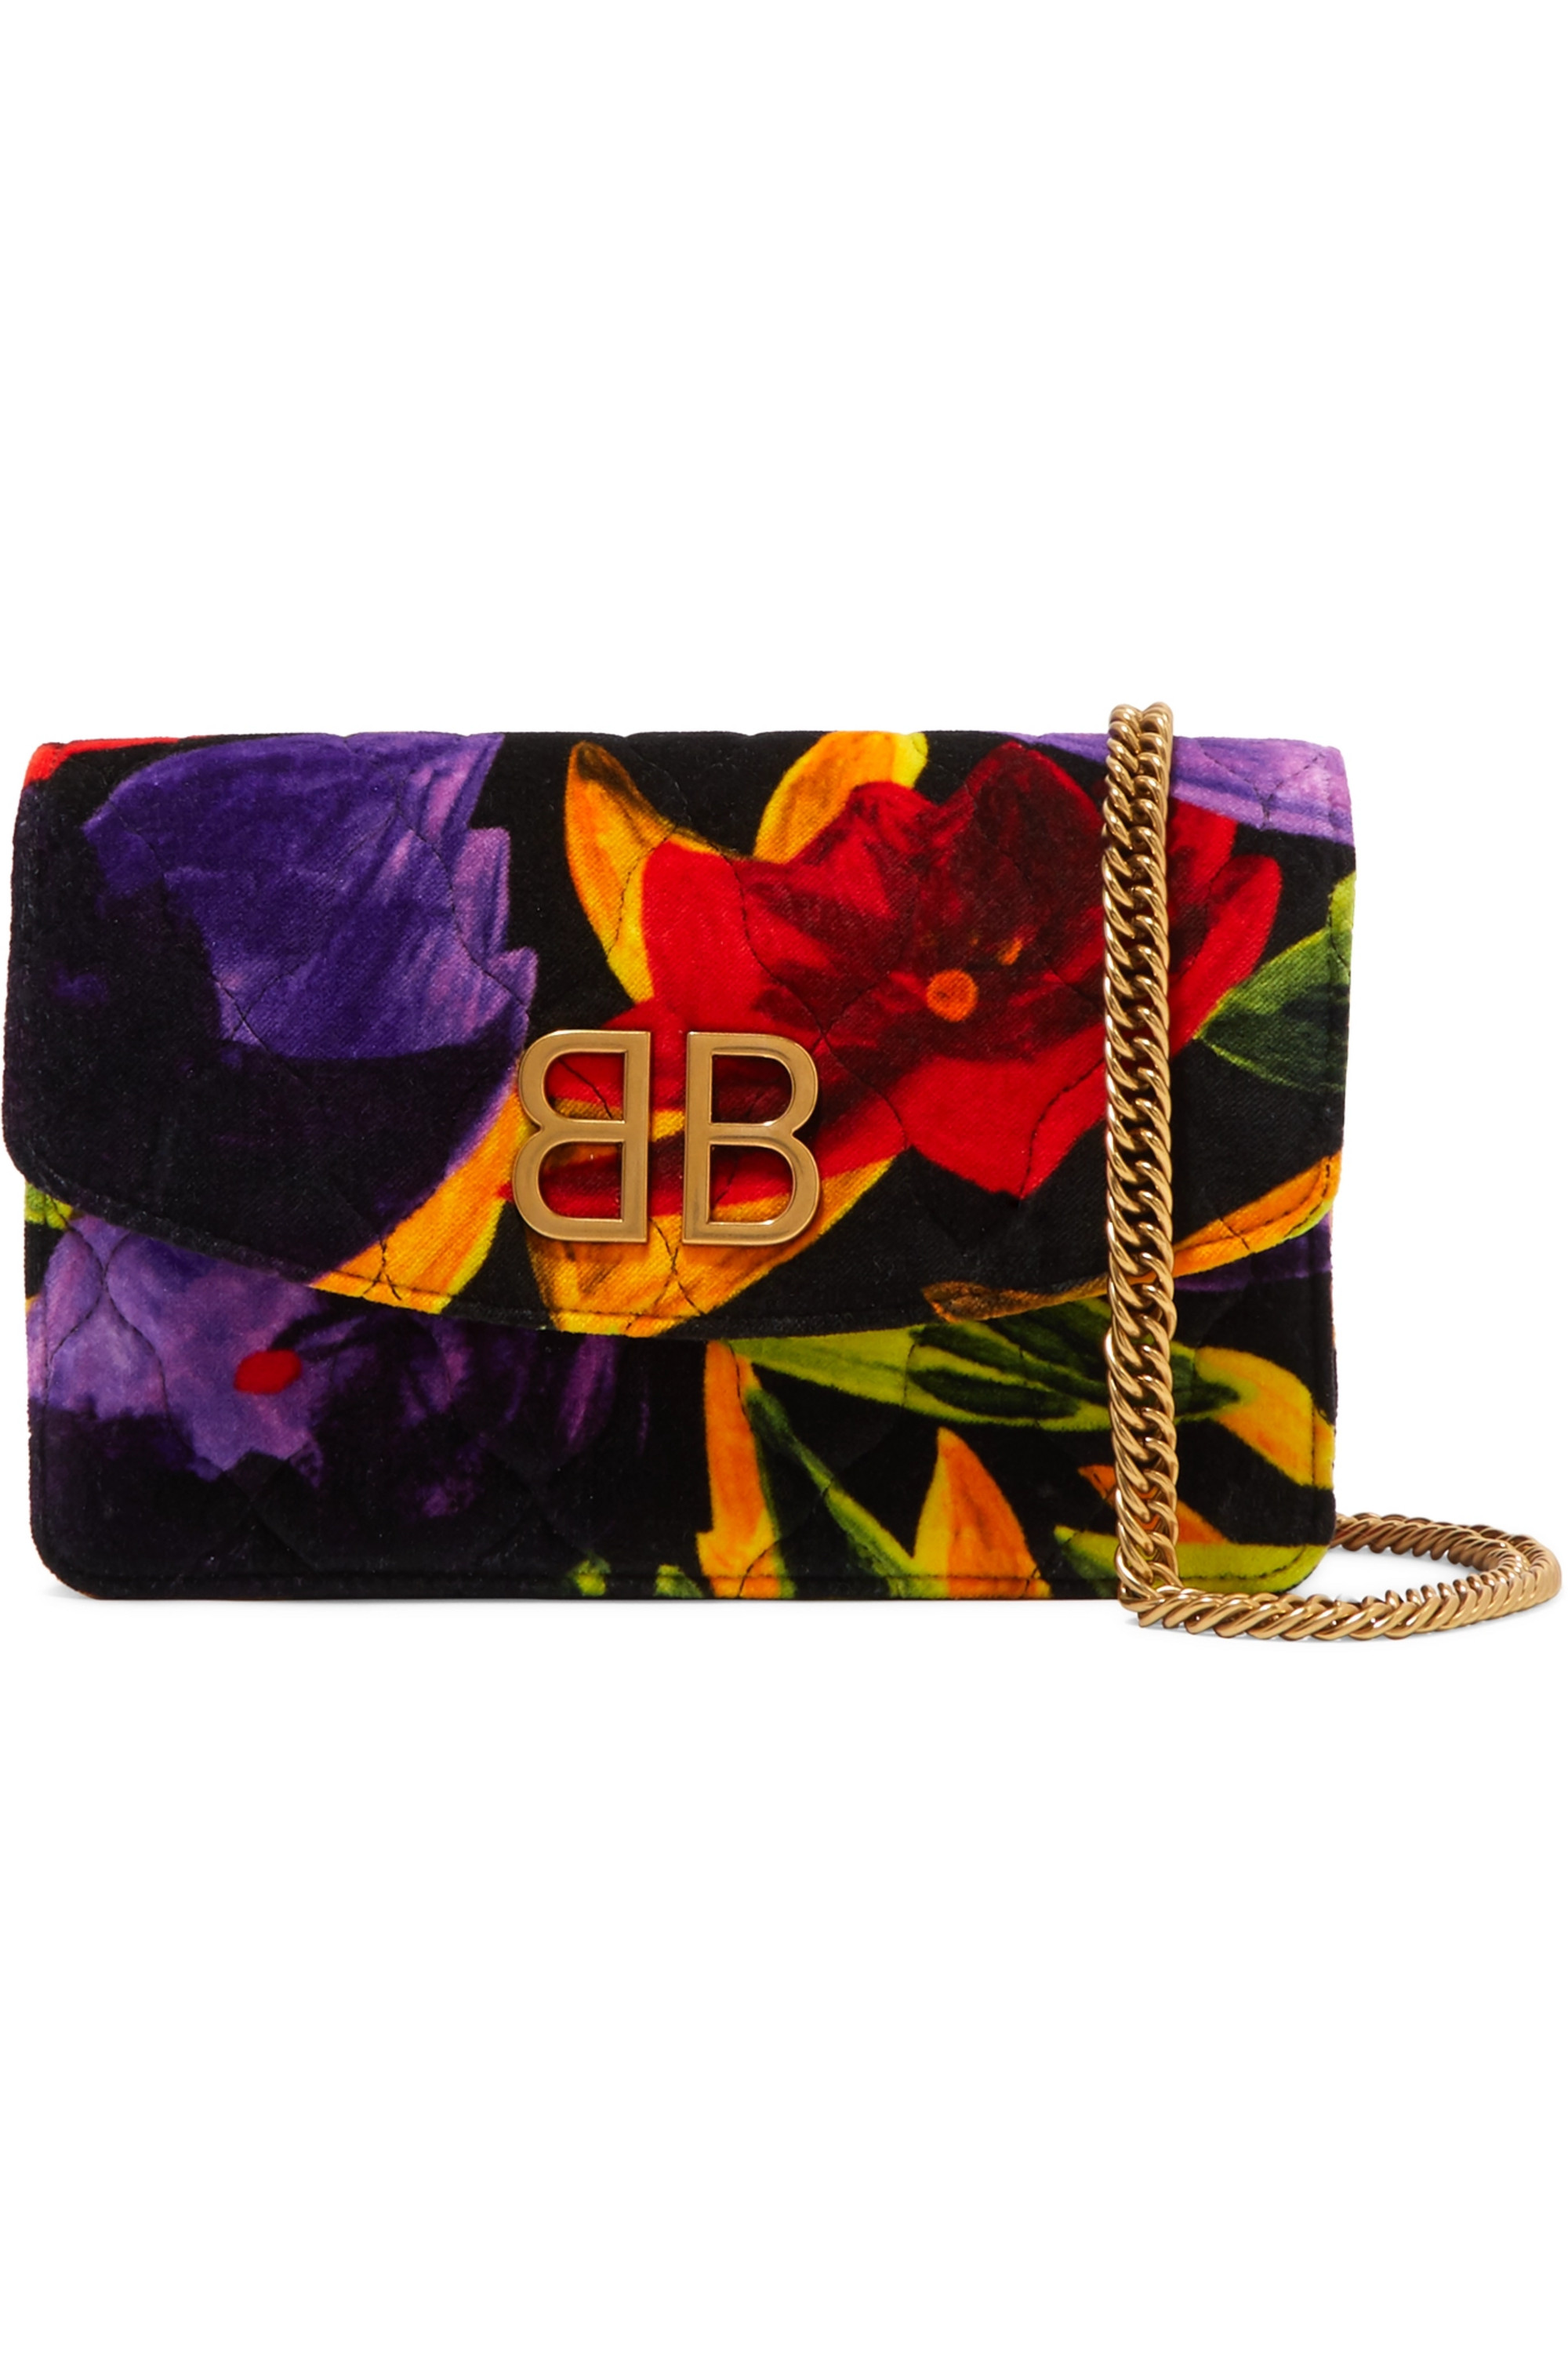 Red BB Chain quilted printed velvet